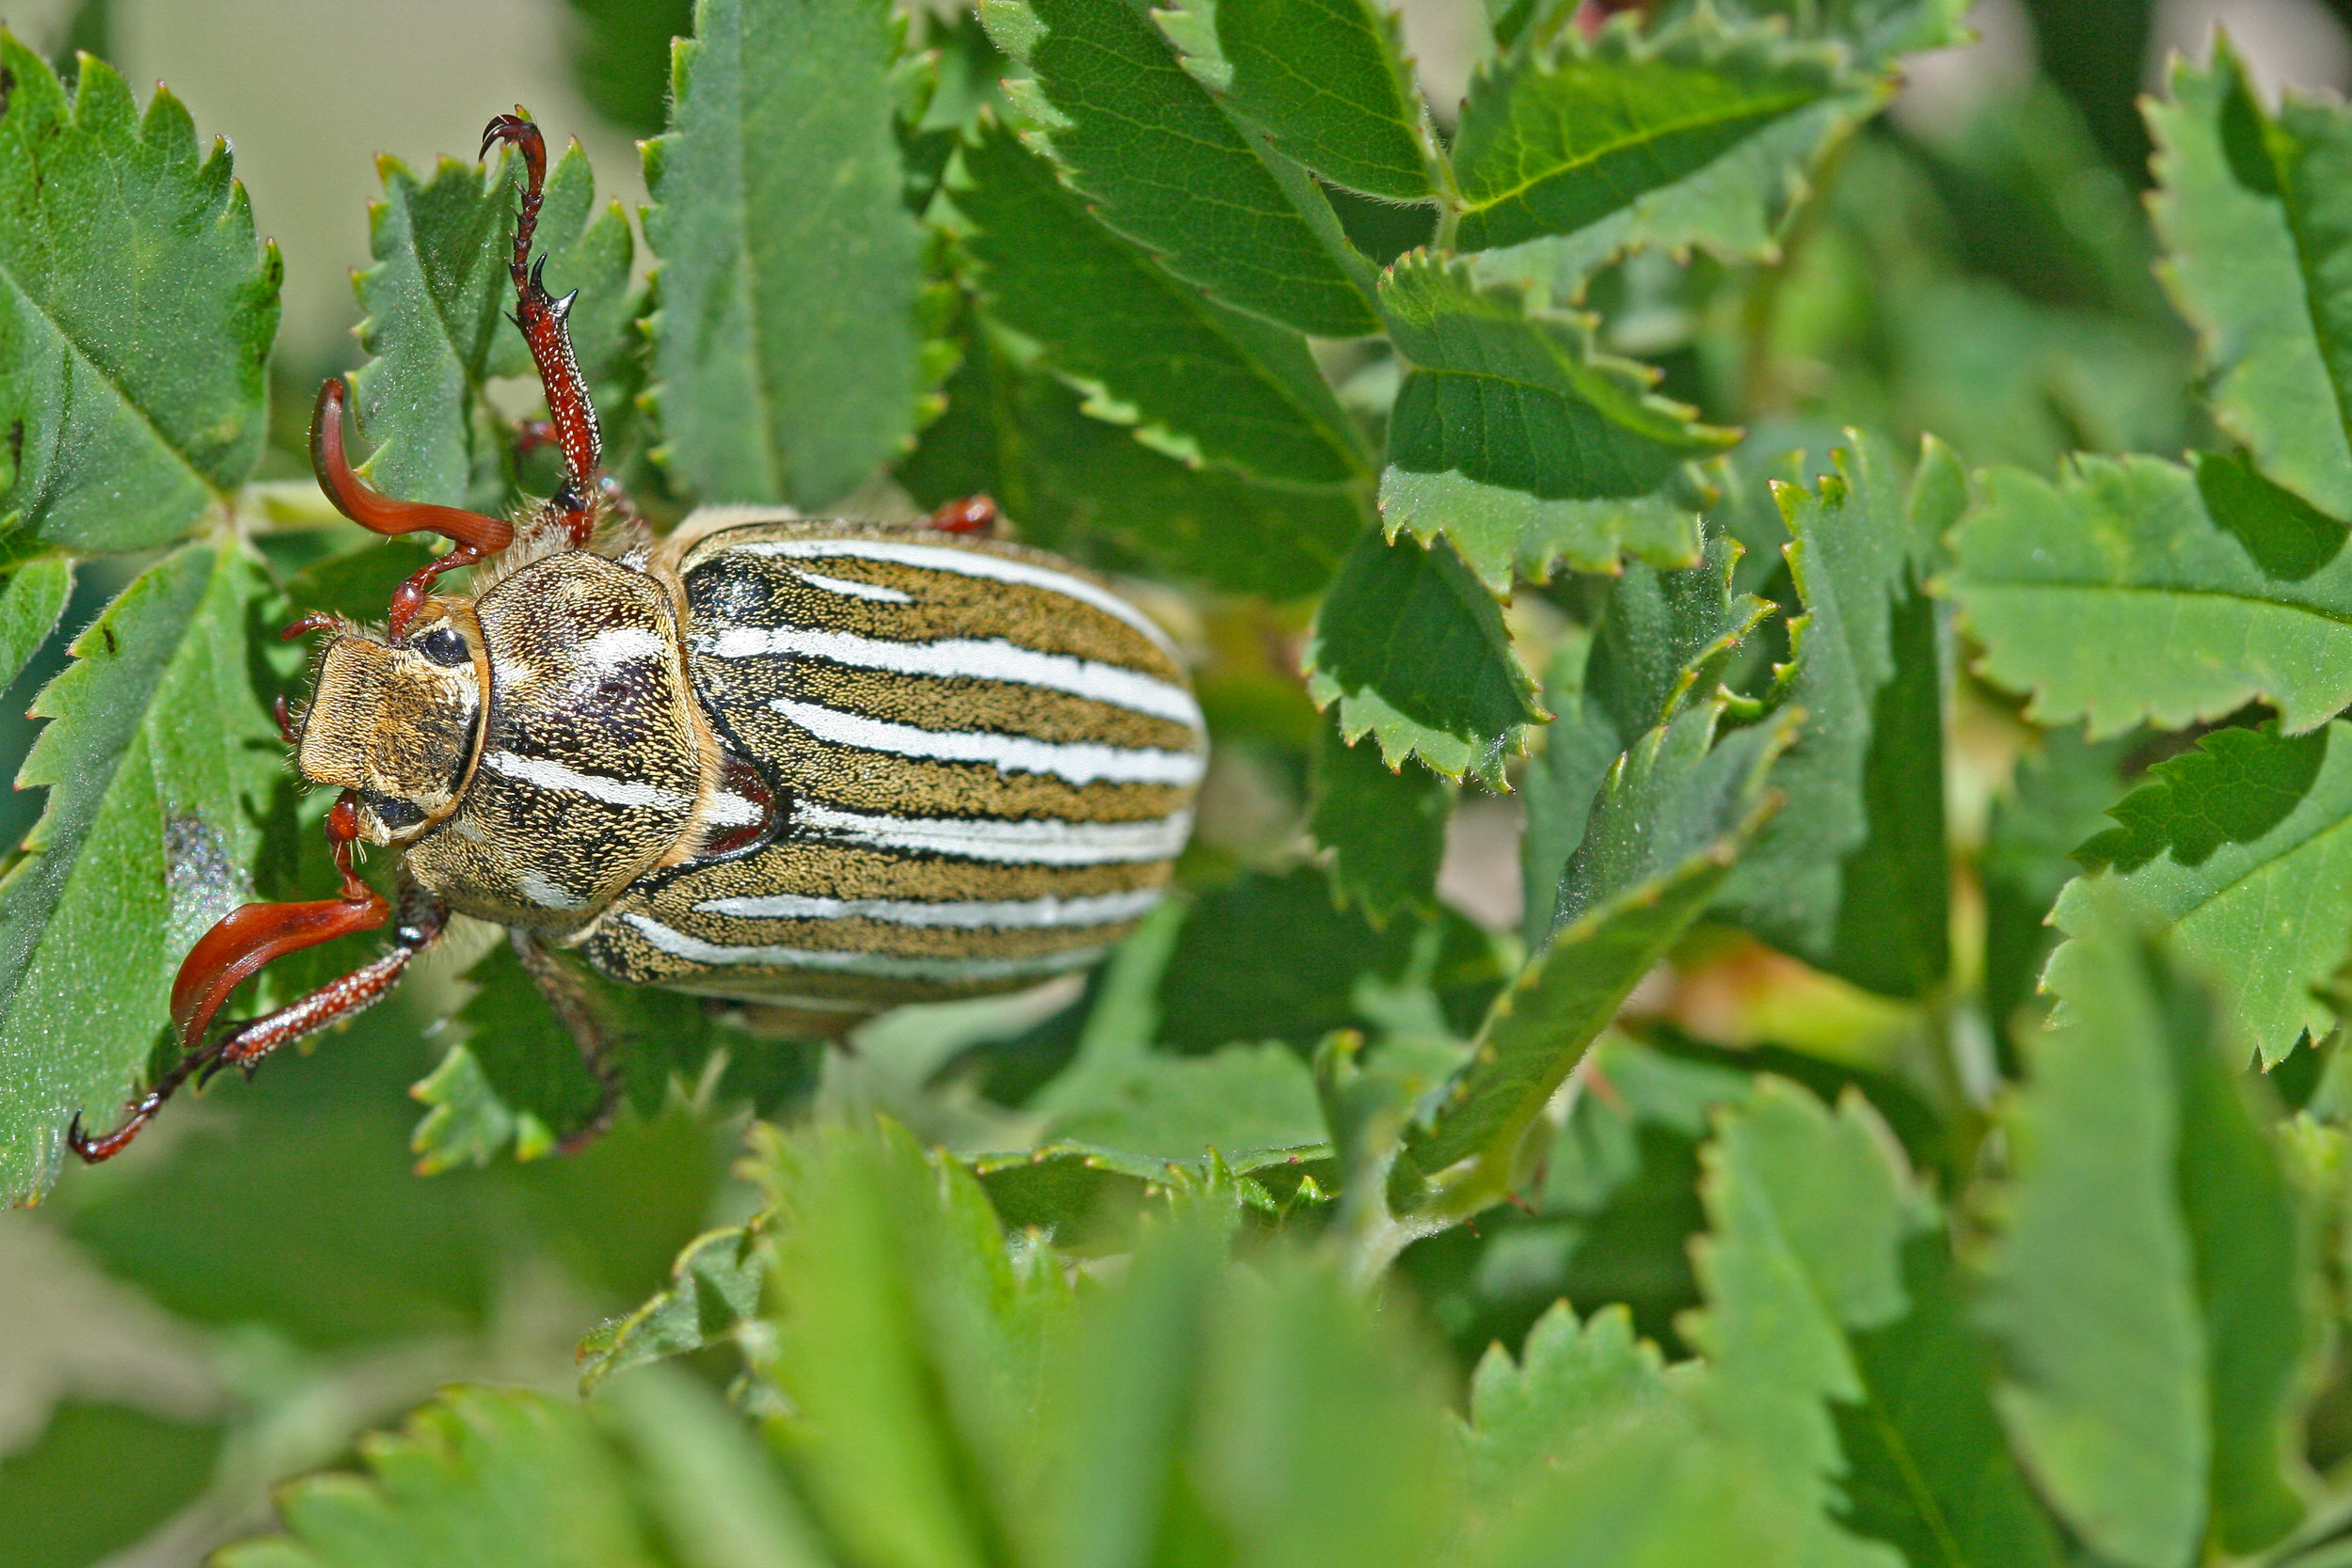 Polyphylla decemlineata in CFB Suffield, Alberta 2013